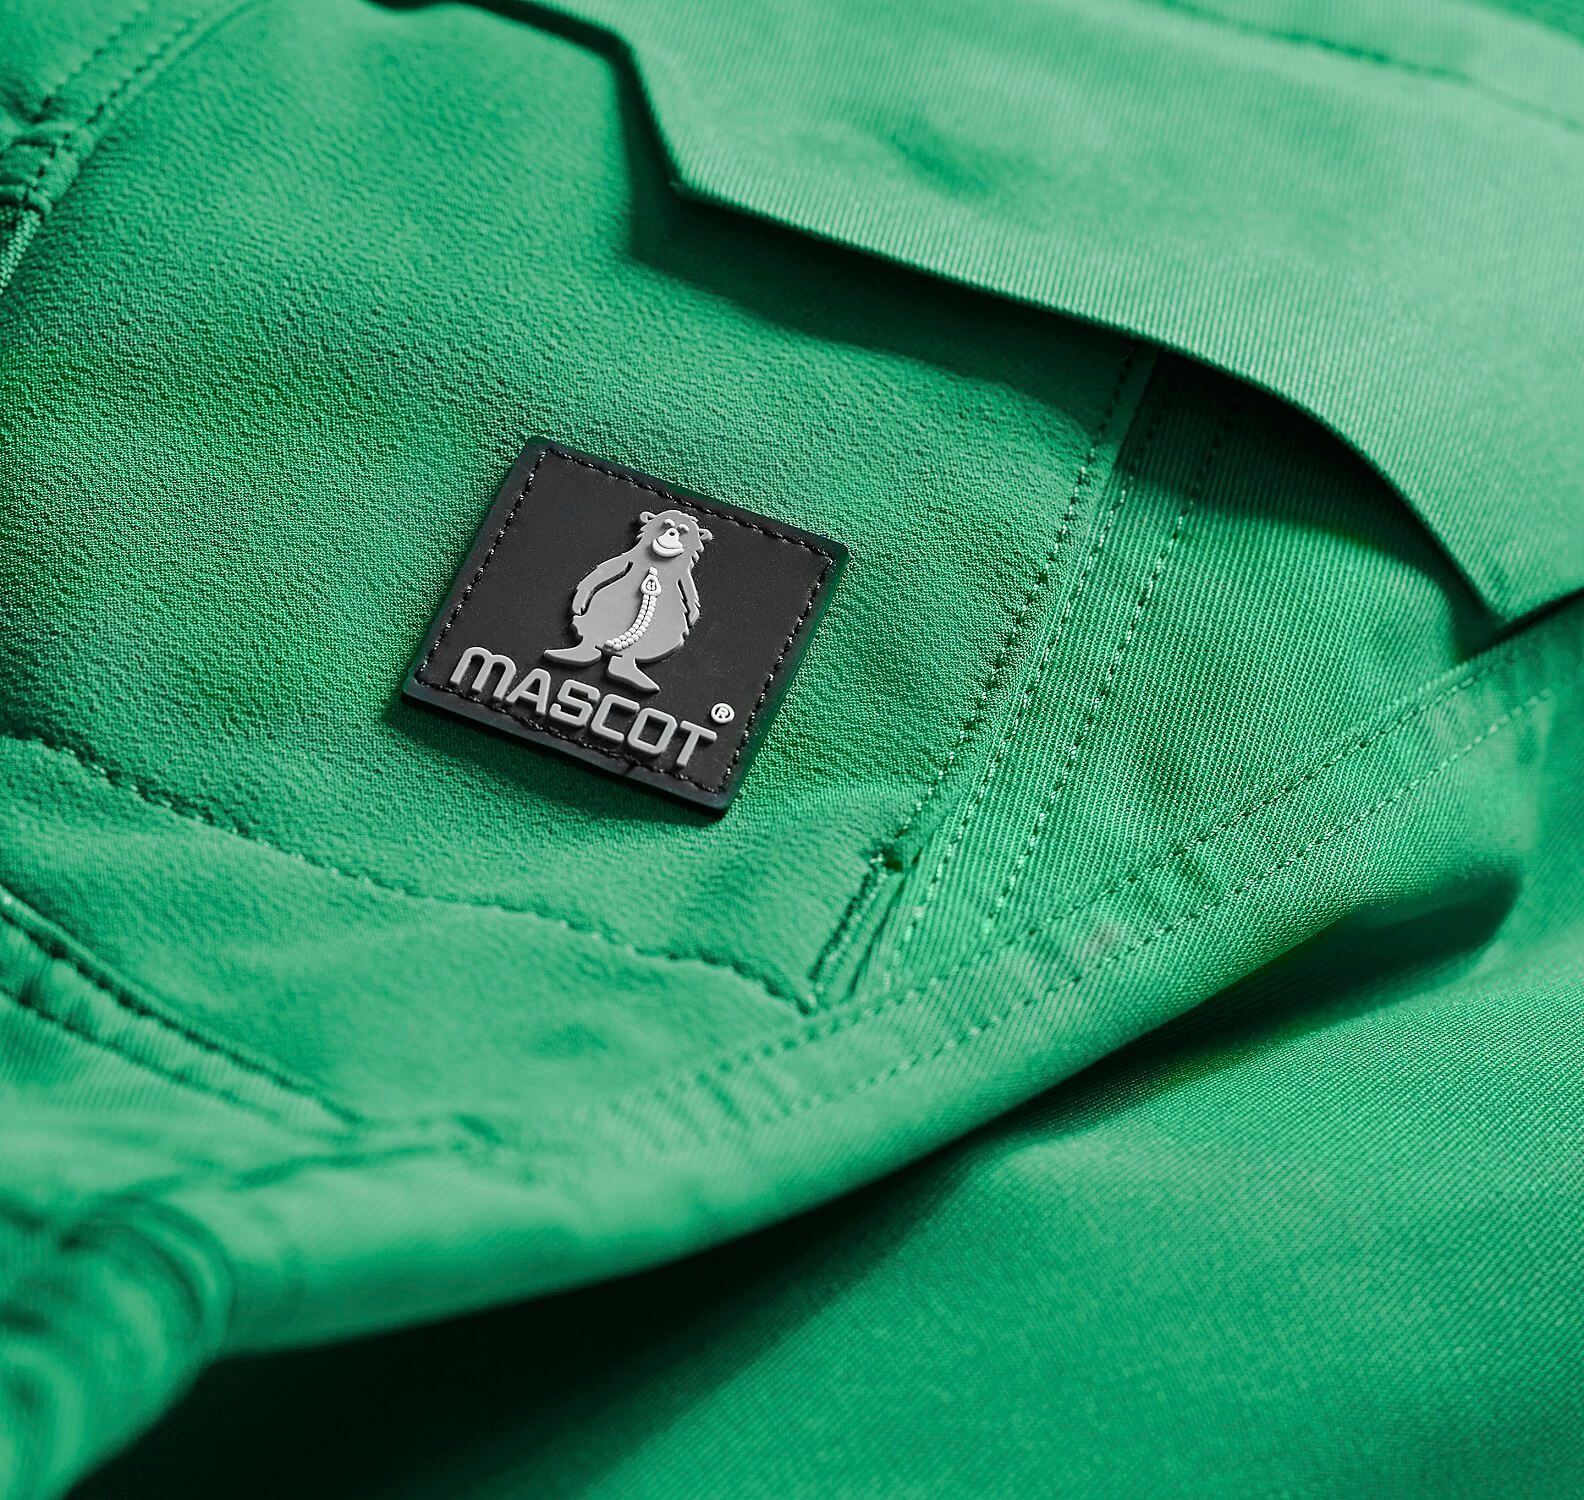 Detail - Trousers - MASCOT® ACCELERATE - Green